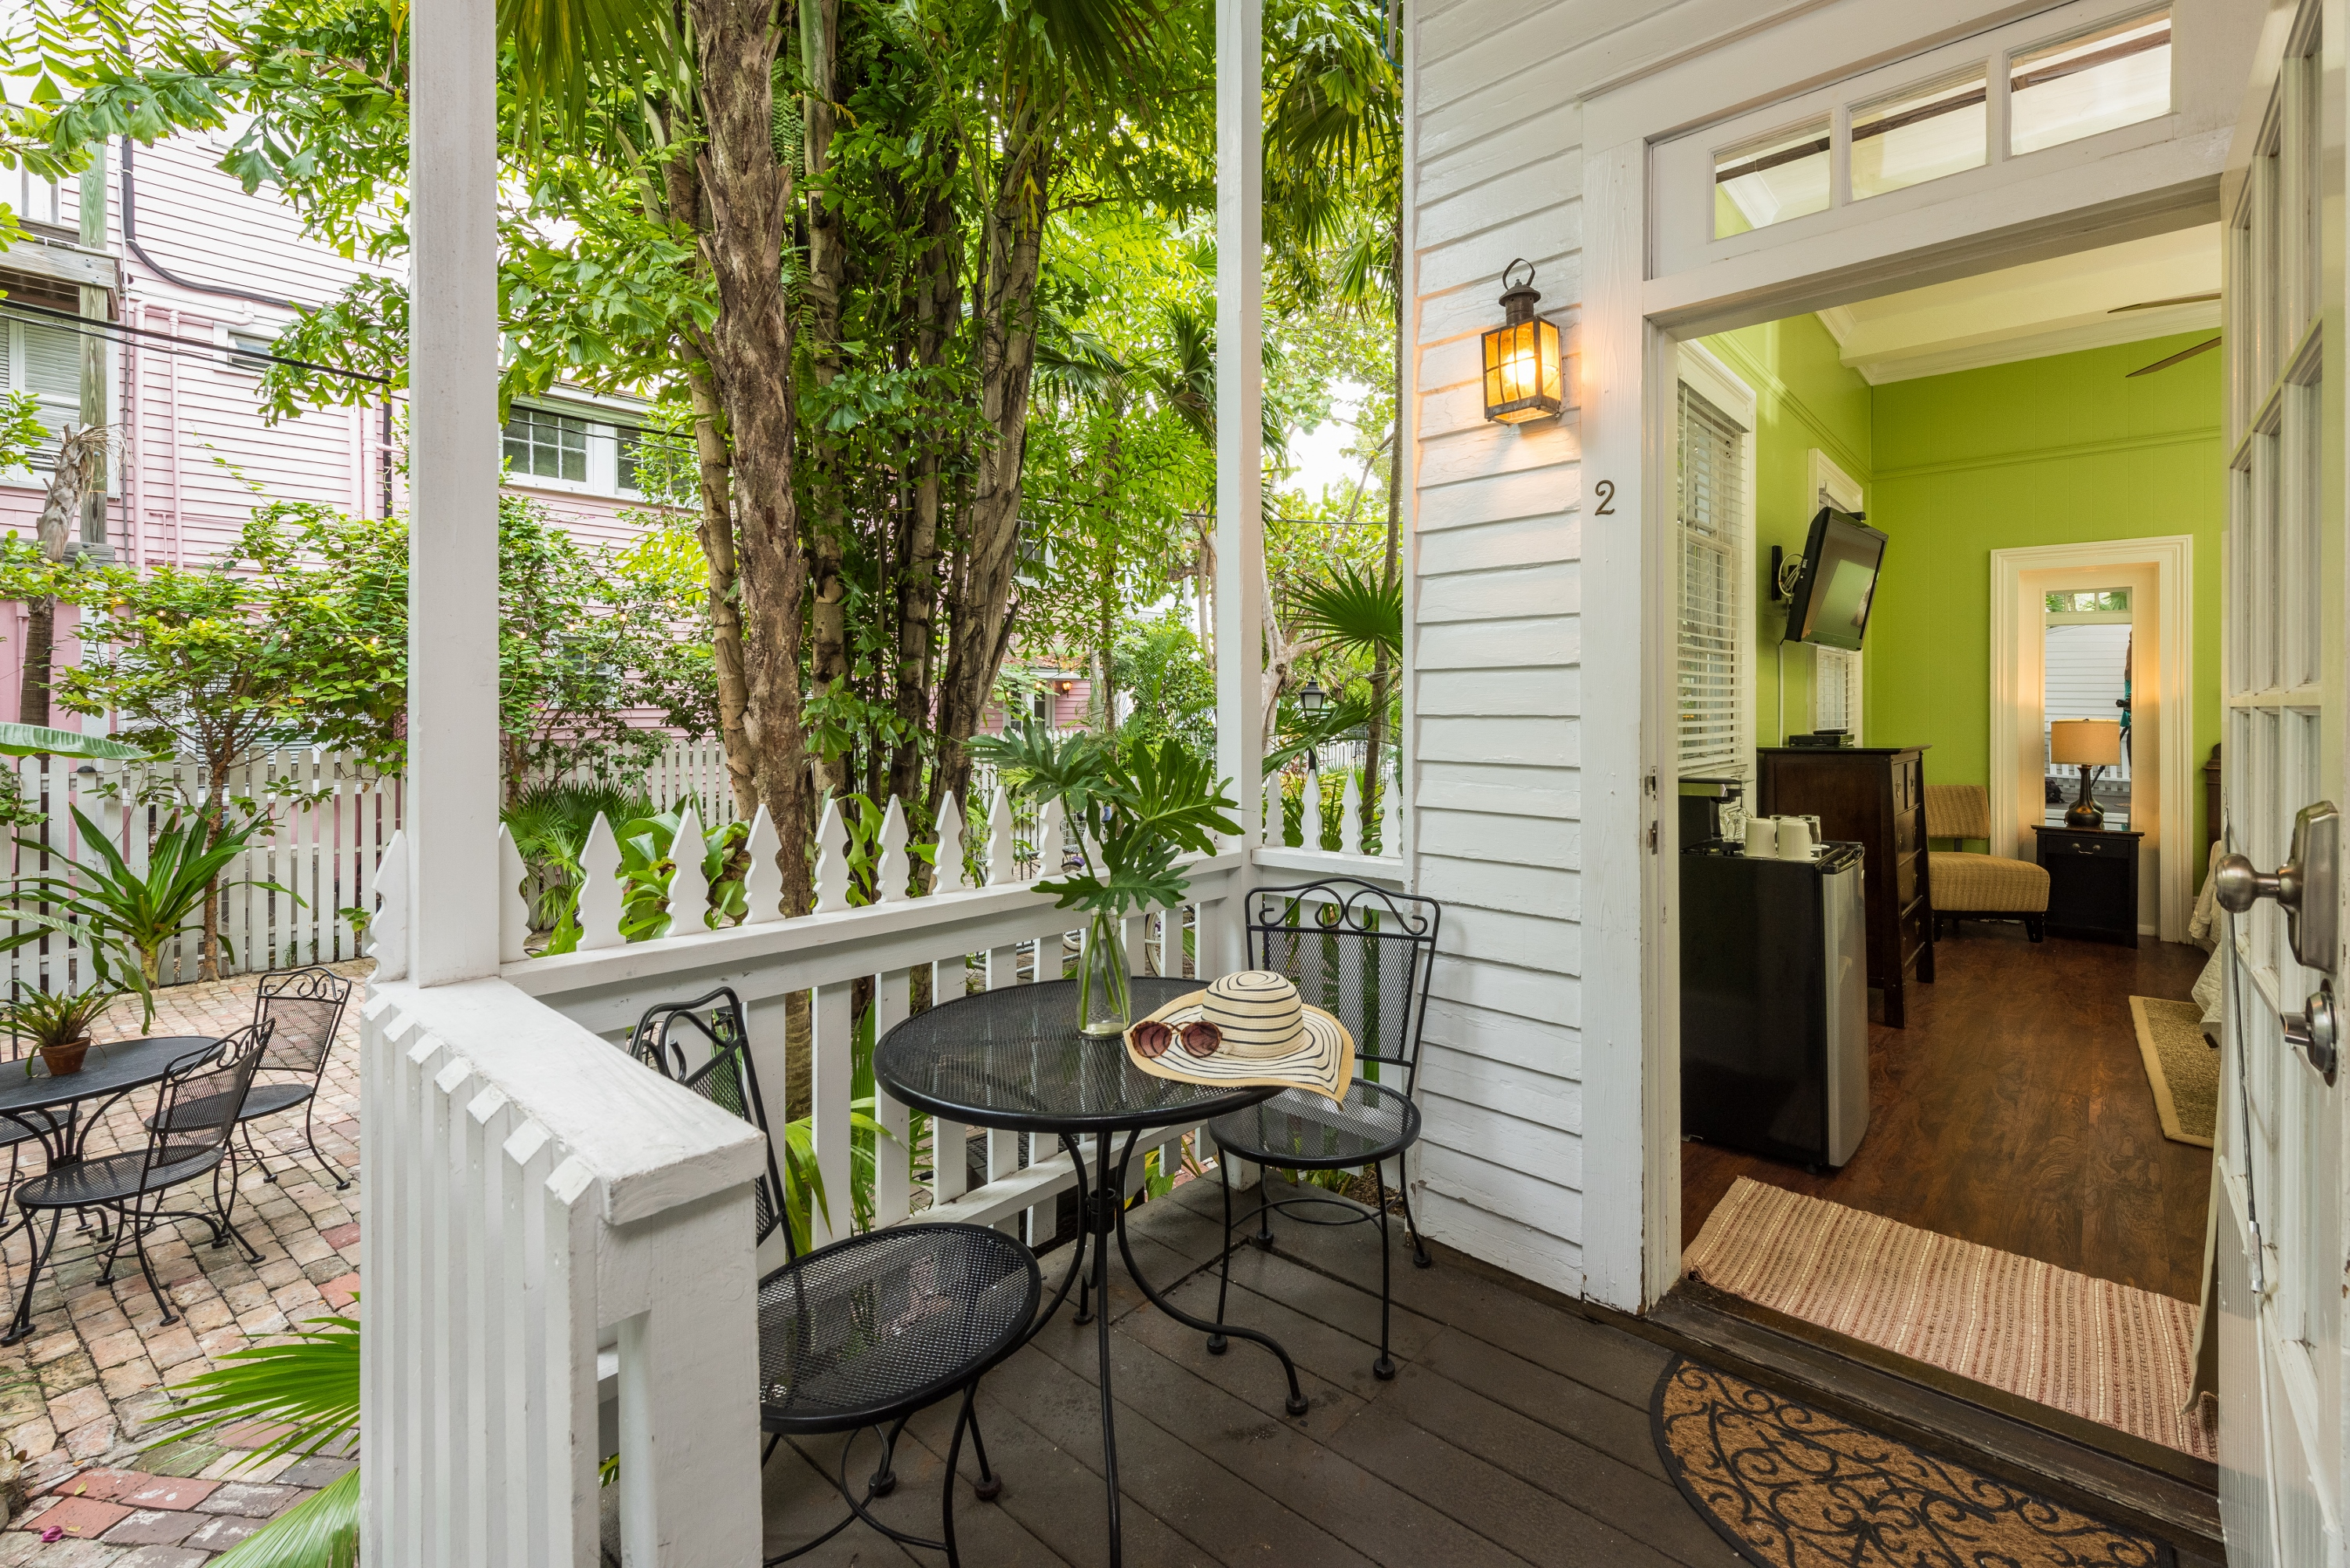 BB Key West Old Town Manor Key West Bed Breakfast